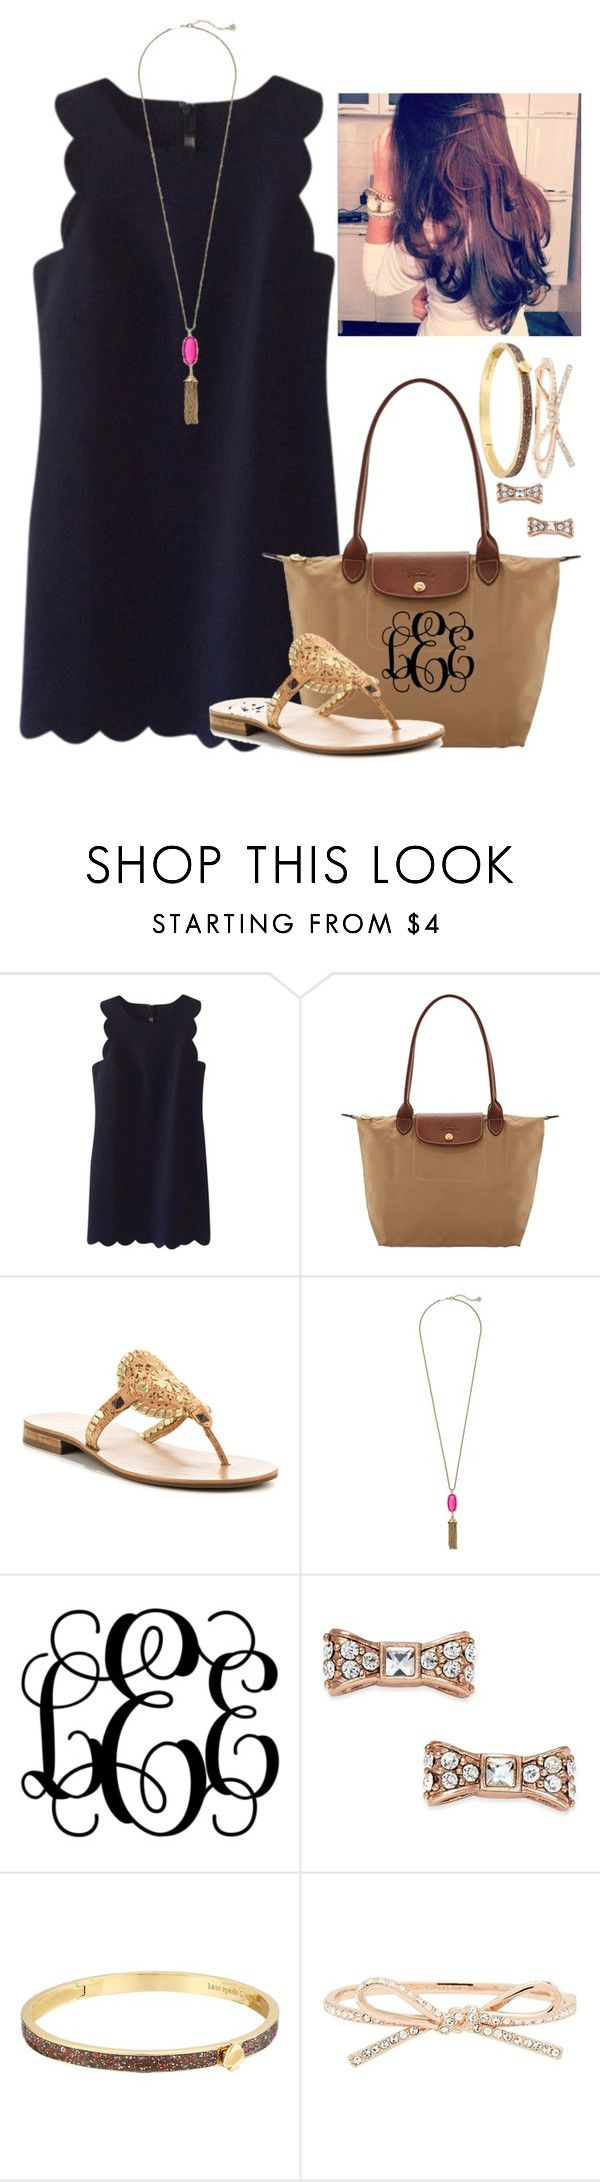 I now want a scalloped dress!! by flroasburn ❤ liked on Polyvore featuring J.Crew, Longchamp, Jack Rogers, Kendra Scott and Kate Spade